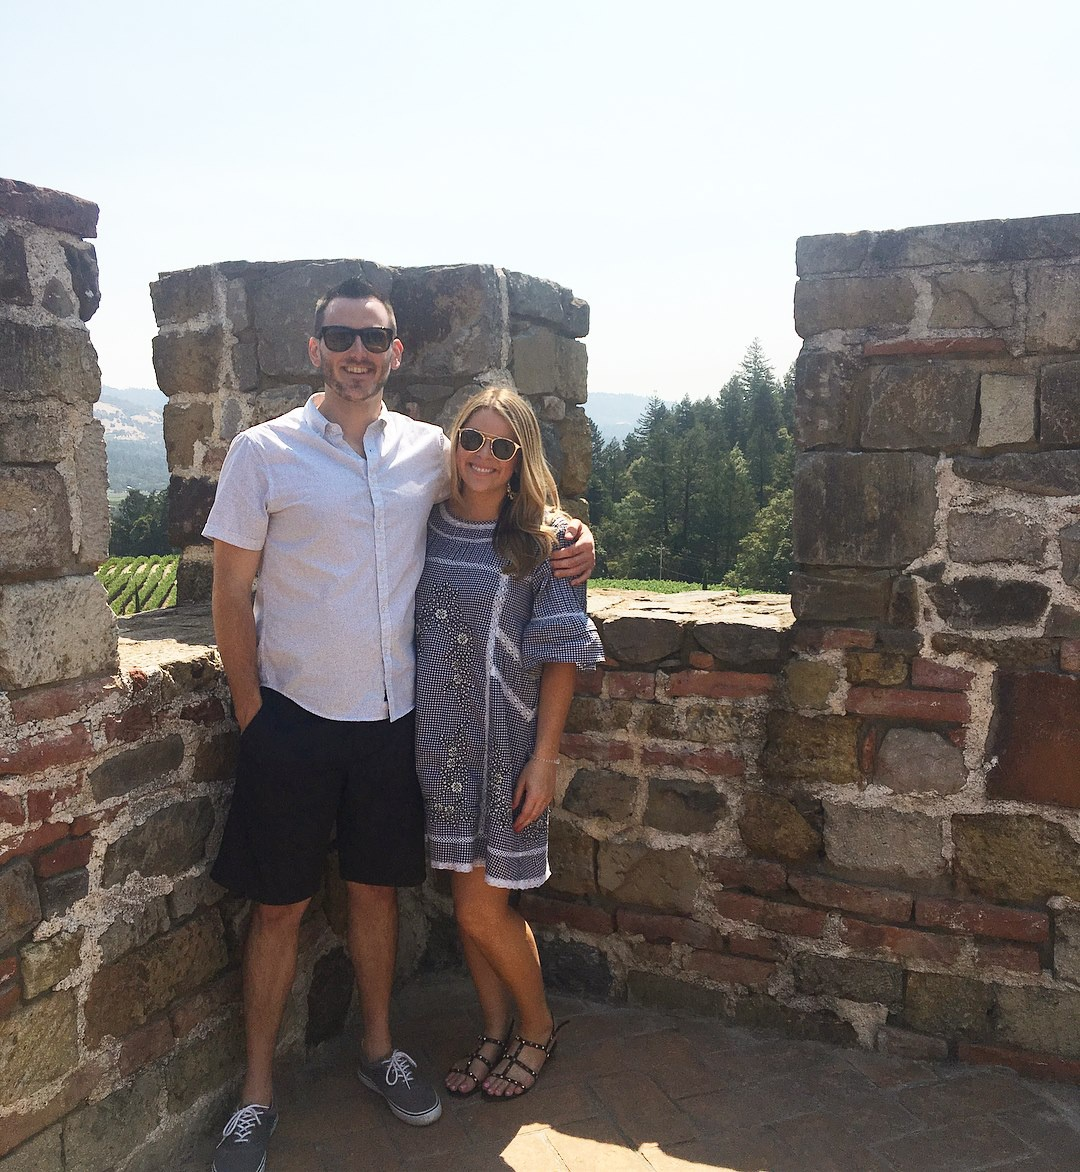 Our First Trip to Napa Valley, CA